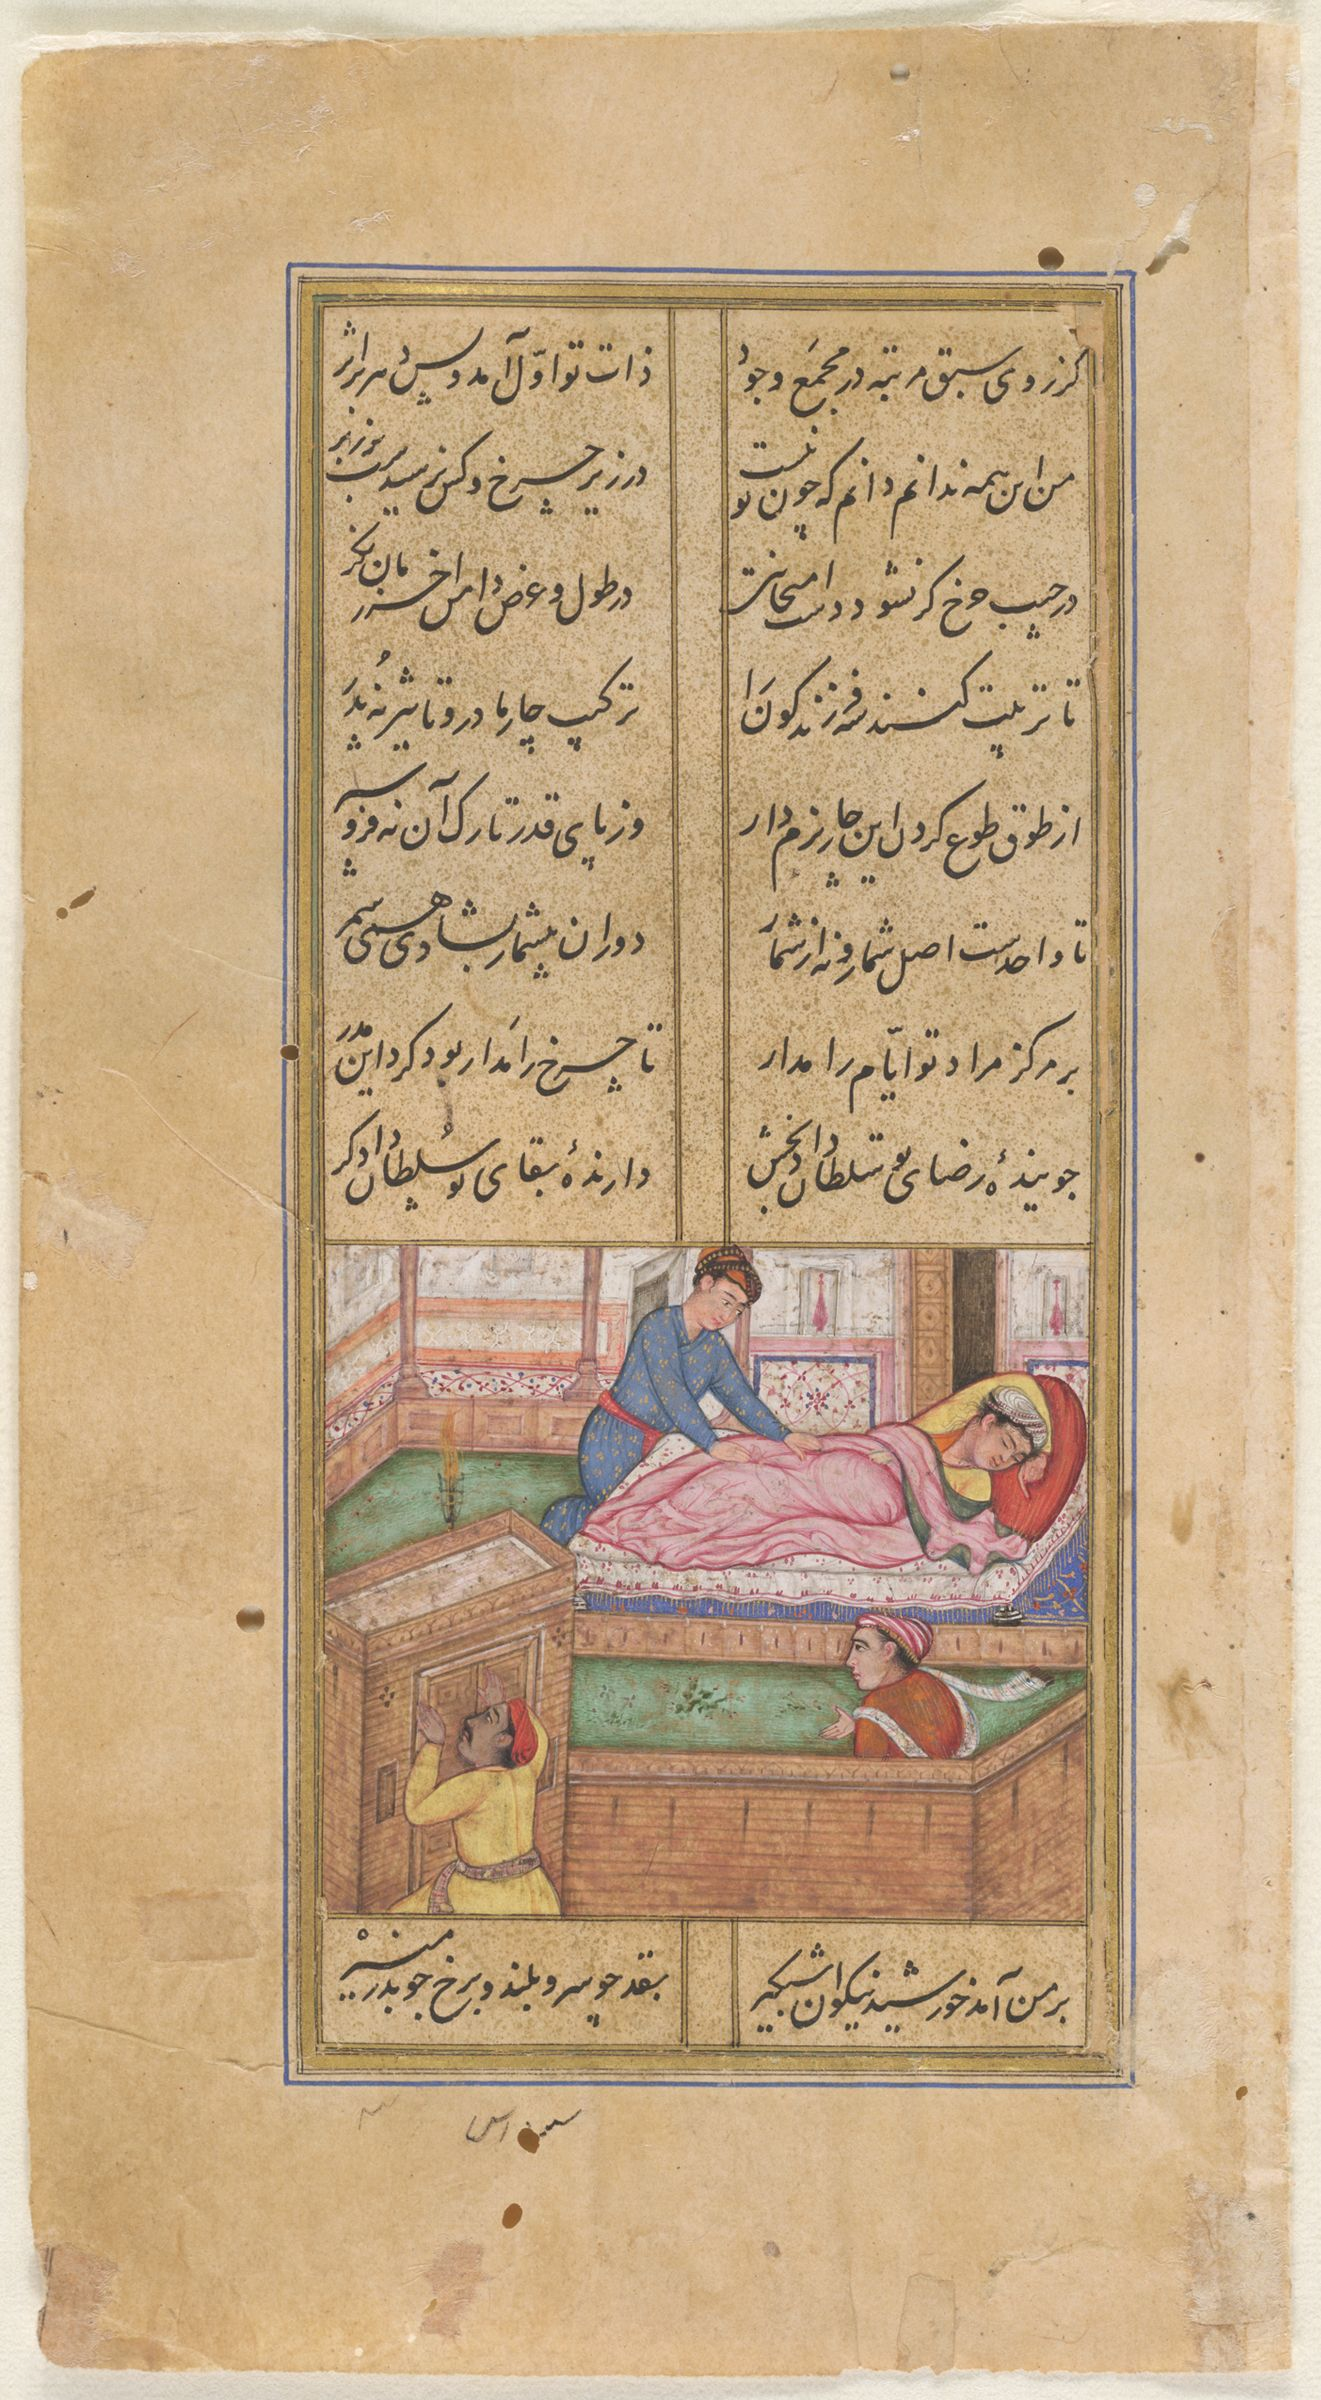 The Beloved Arrives At Midnight (Painting, Recto; Text, Verso), Folio 54 From A Manuscript Of The Divan (Collection Of Works) Of Anvari